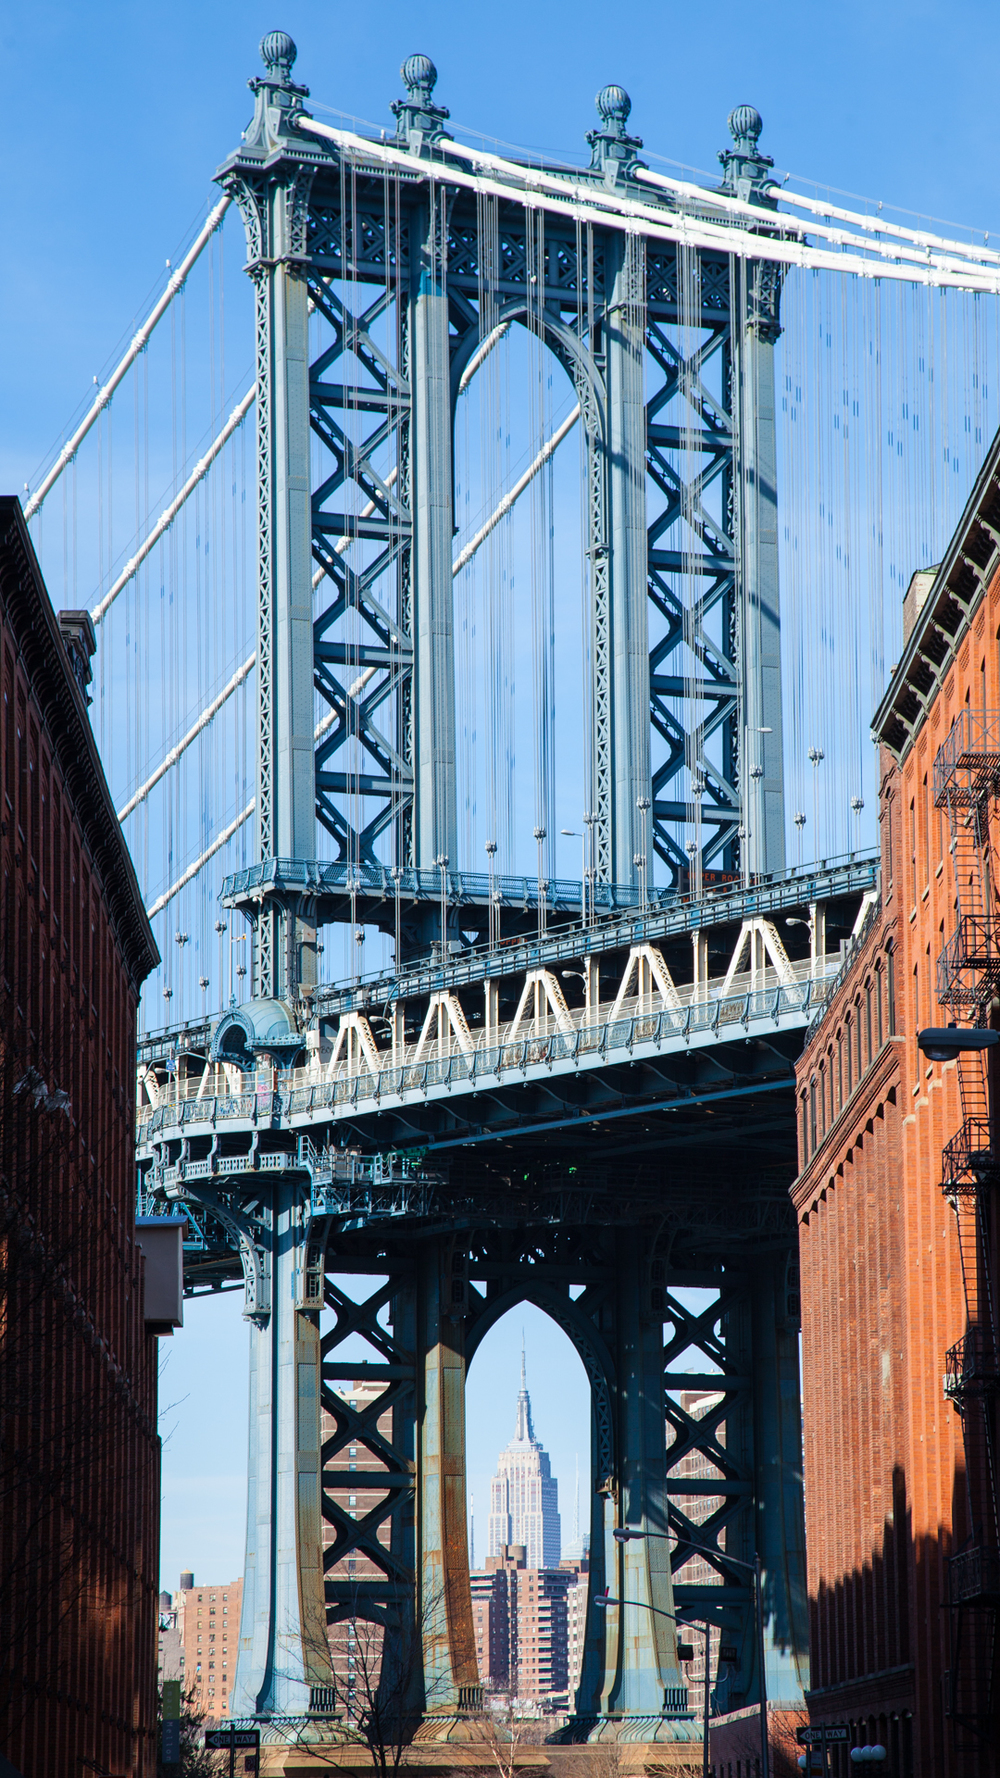 The Manhattan Bridge perfectly frames the Empire State Building back across the river in Manhattan.